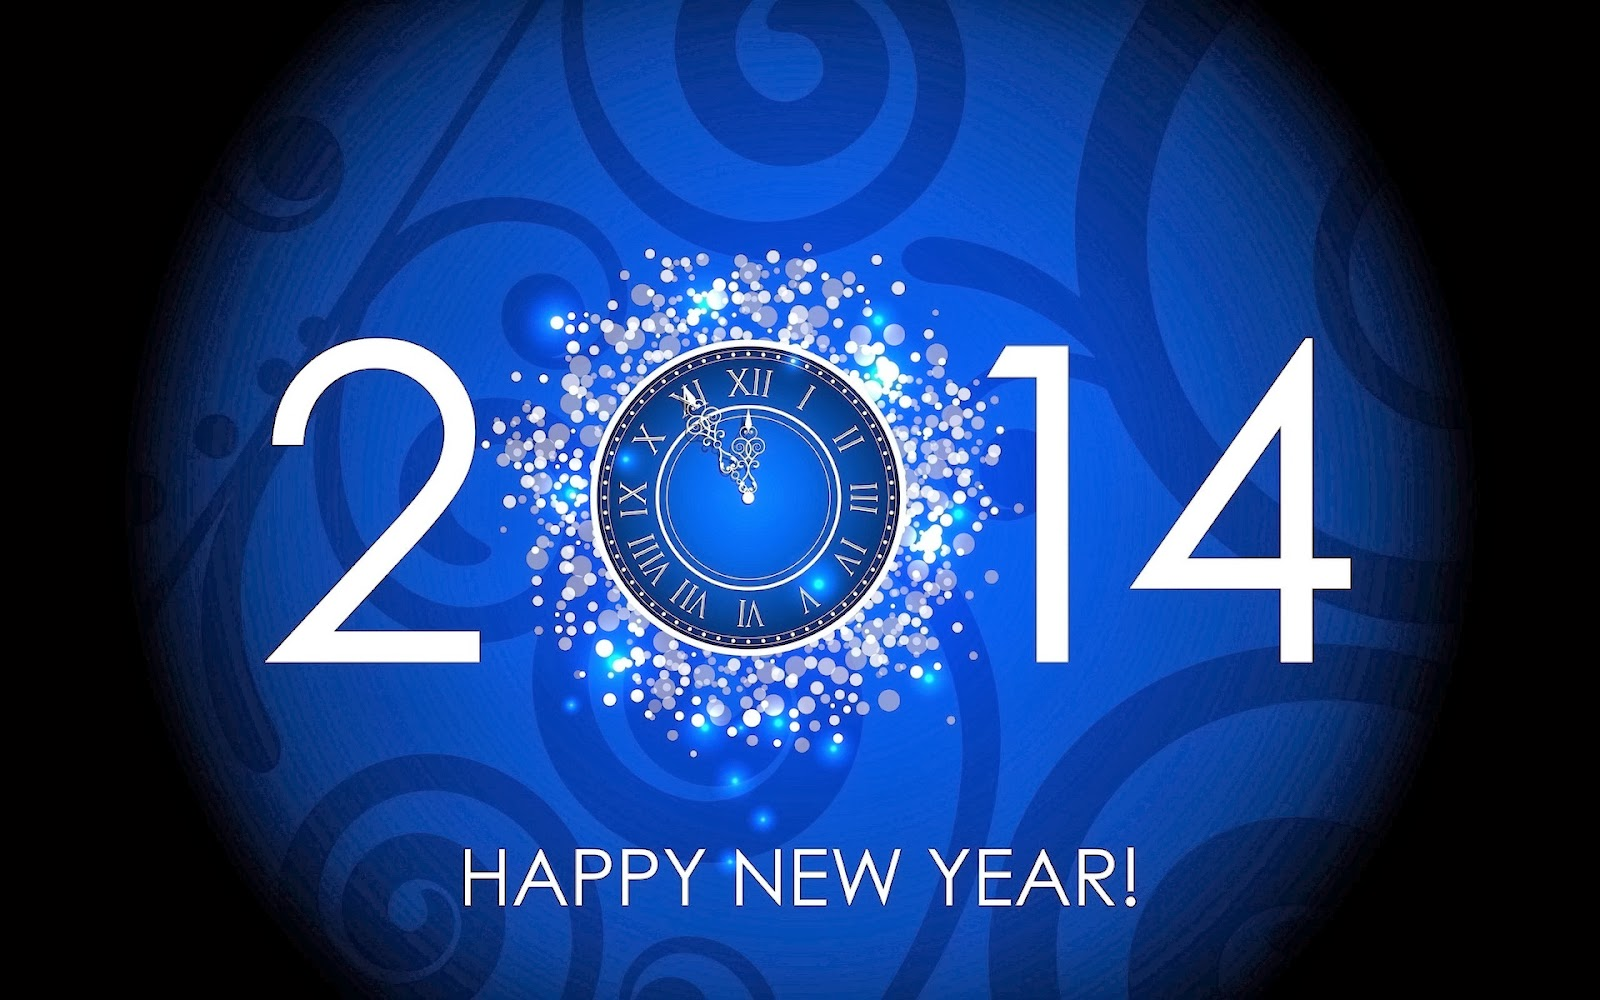 New Year Wishes Quotes 2014 | Happy New Year Quotes